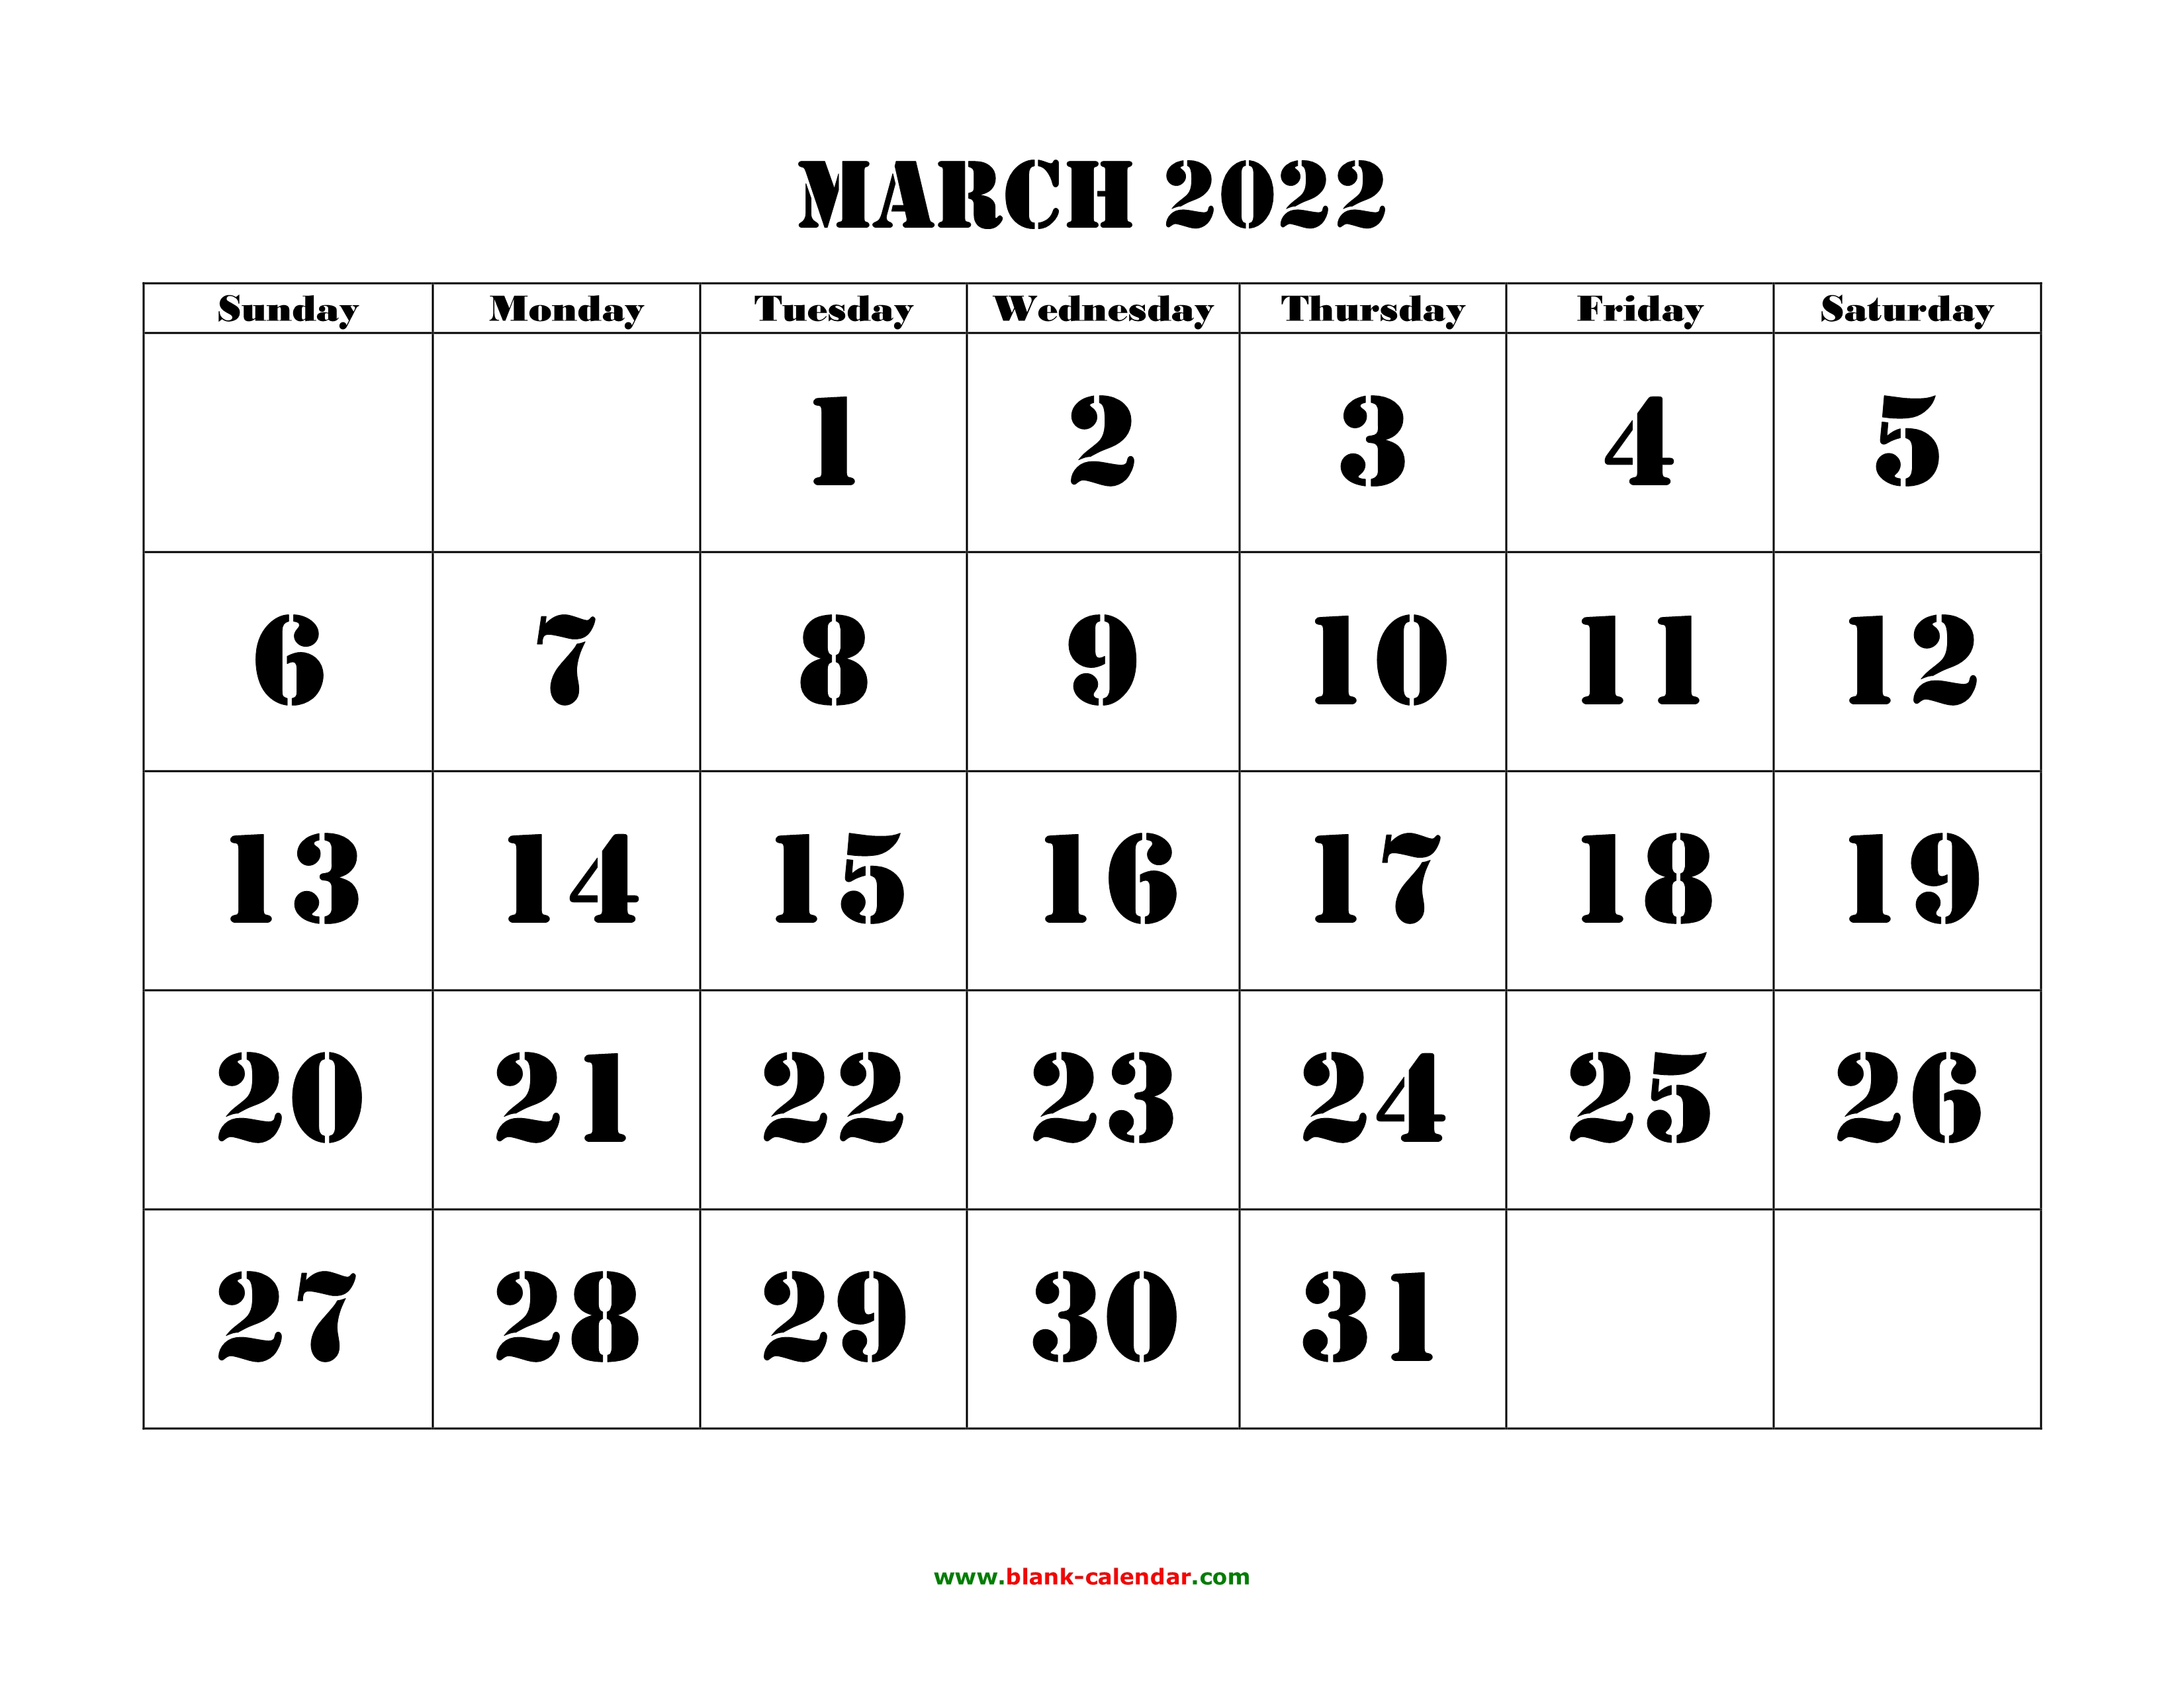 Free Printable March 2022 Calendar.Free Download Printable March 2022 Calendar Large Font Design Holidays On Red